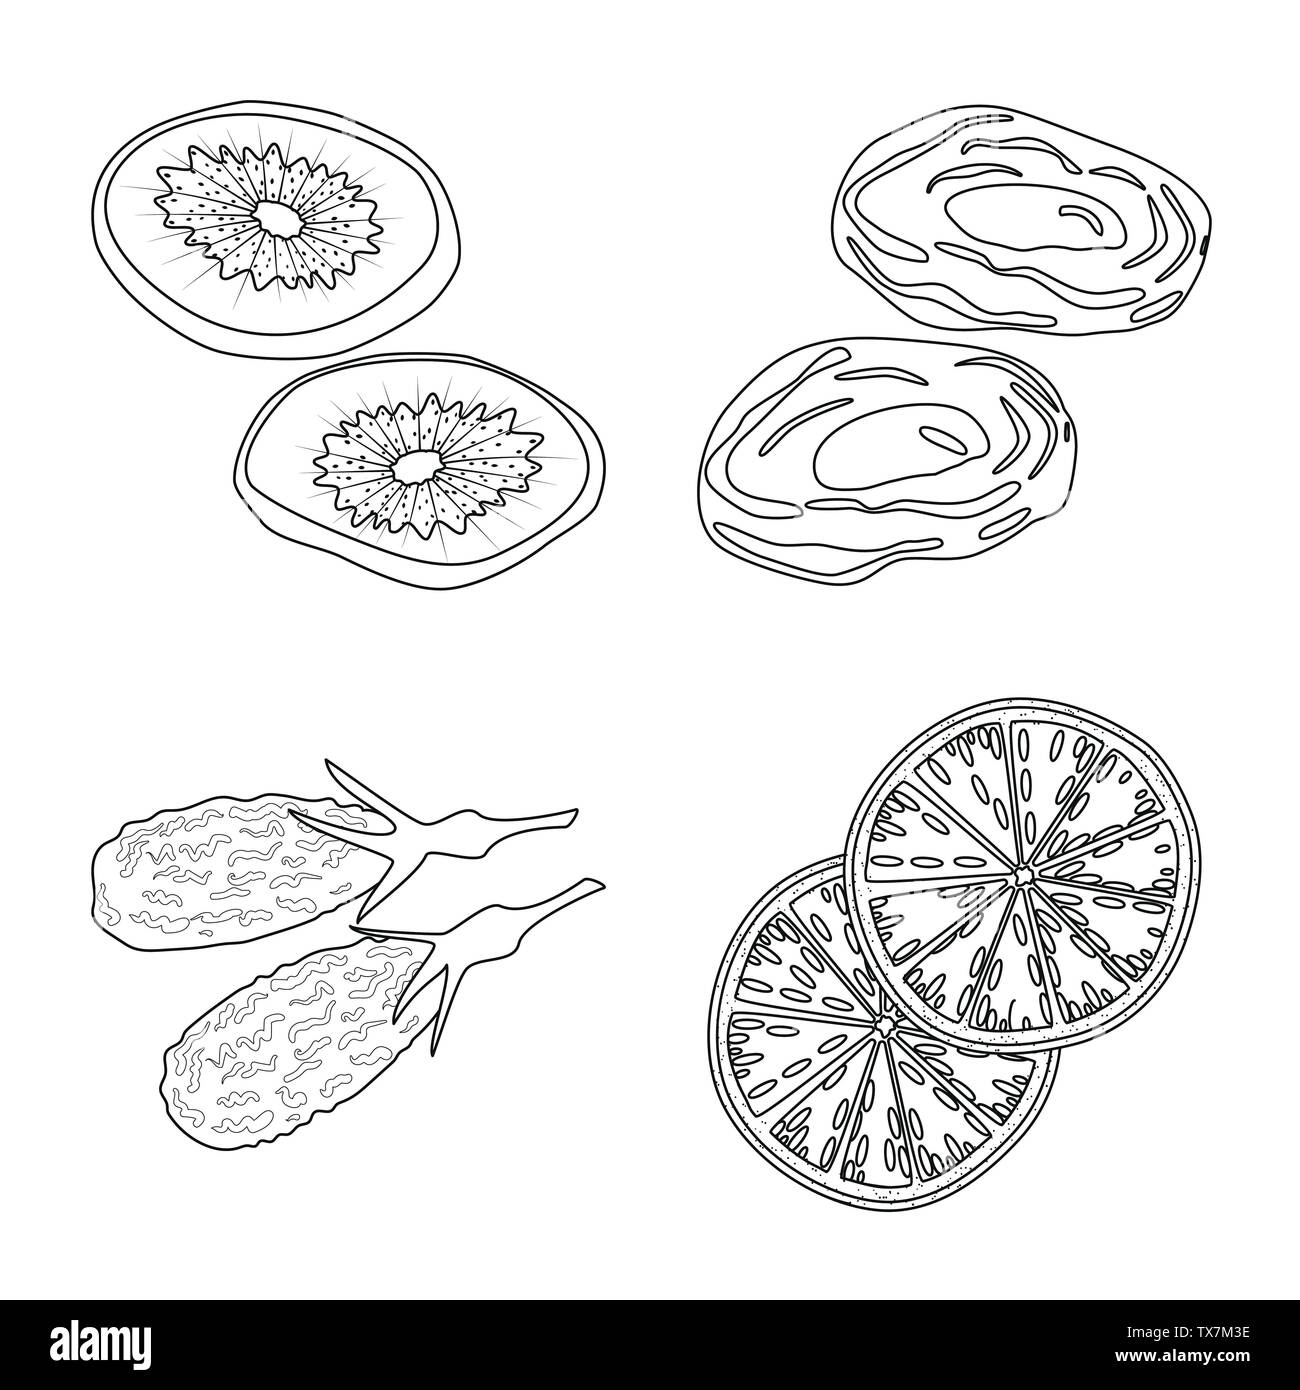 Vector illustration of food  and raw  icon. Set of food  and nature  stock symbol for web. - Stock Image